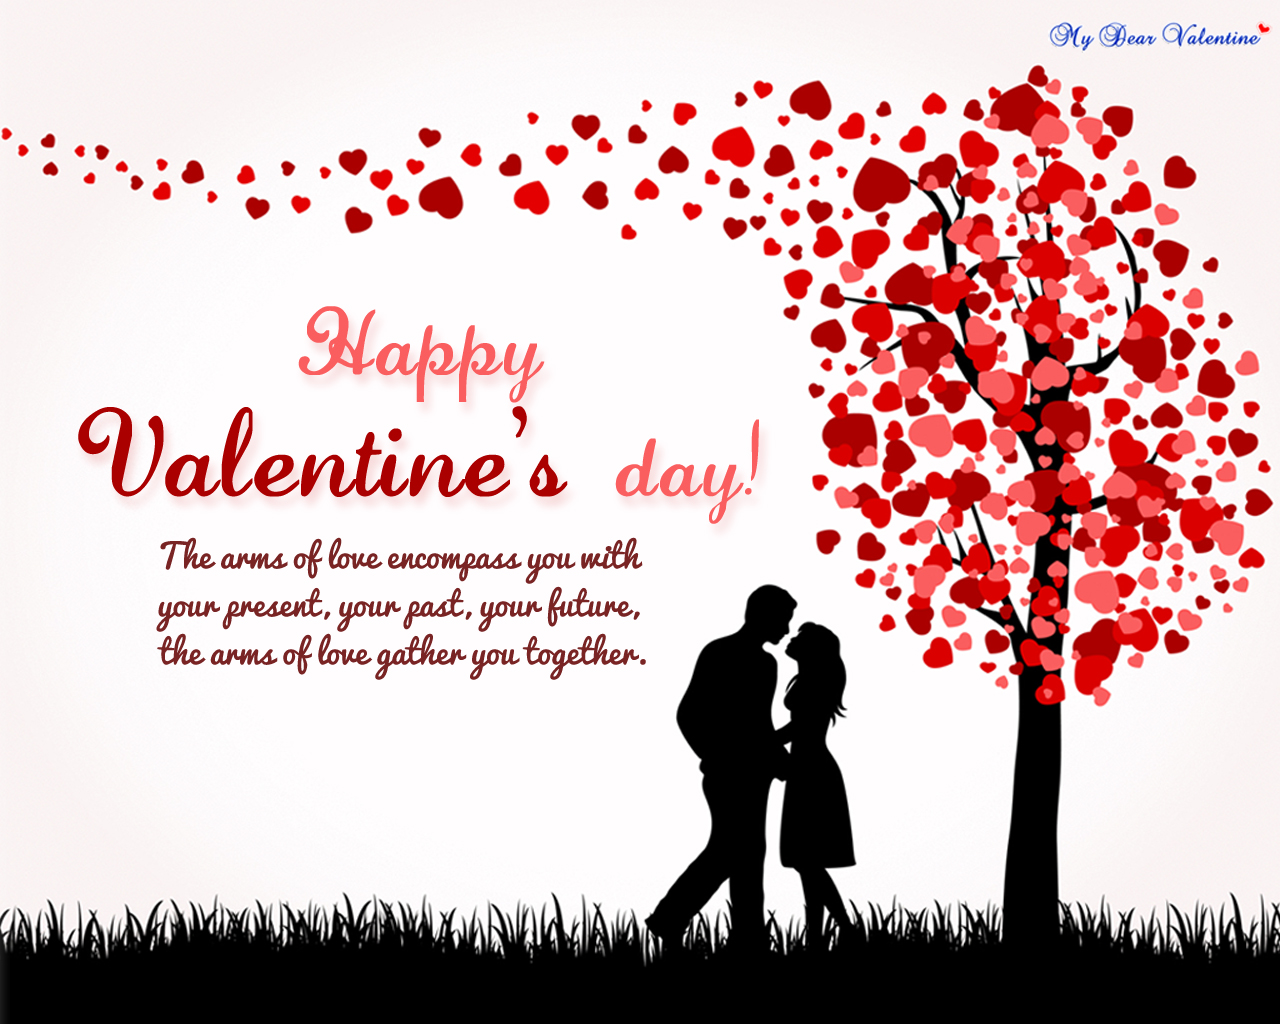 Fall In Love Again Wallpapers Valentine Pictures Romantic Valentine S Day 2013 Images